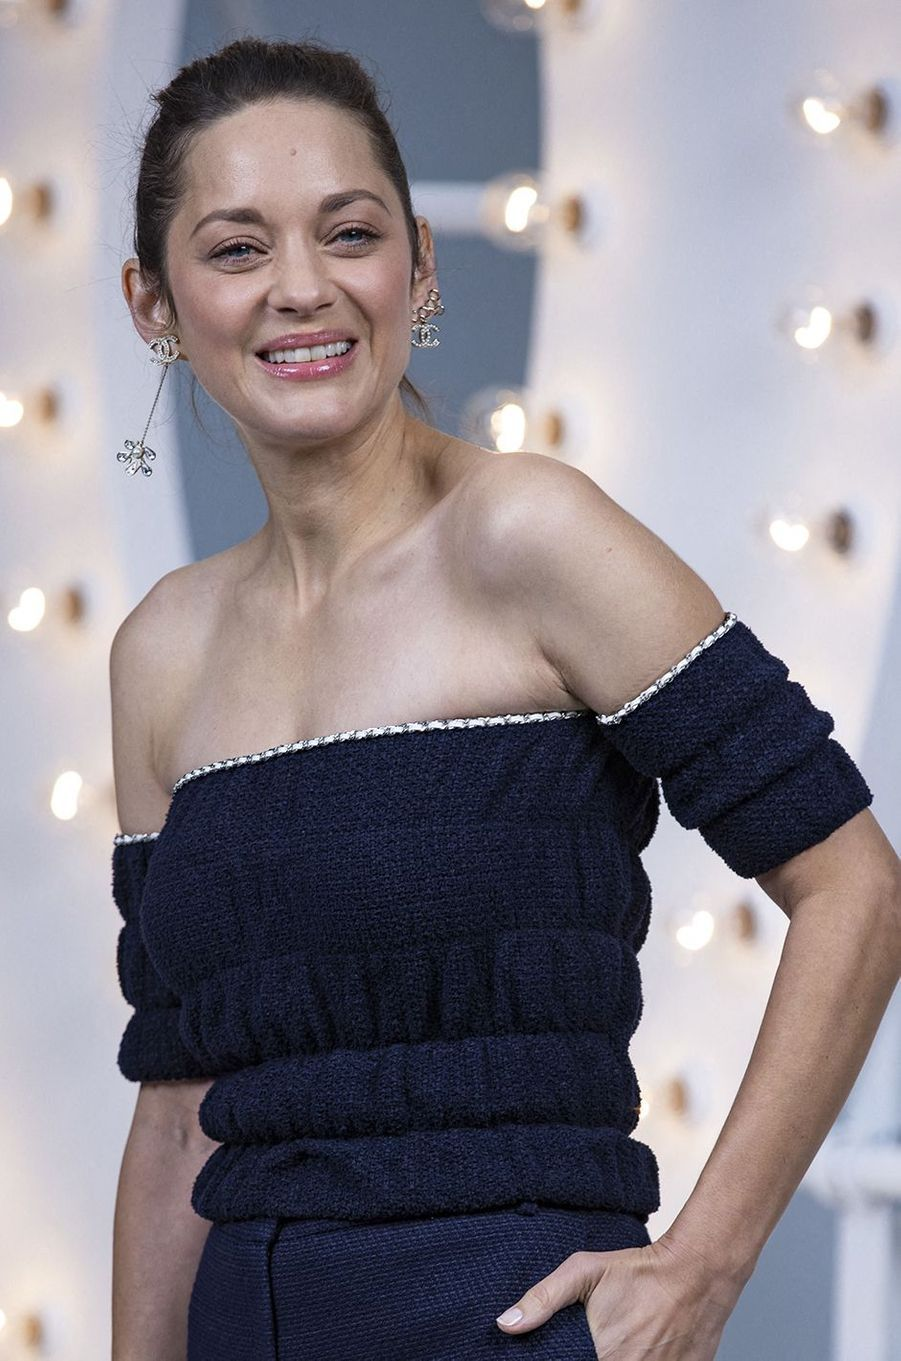 Marion Cotillard au défilé Chanel lors de la Fashion Week à Paris le 6 octobre 2020